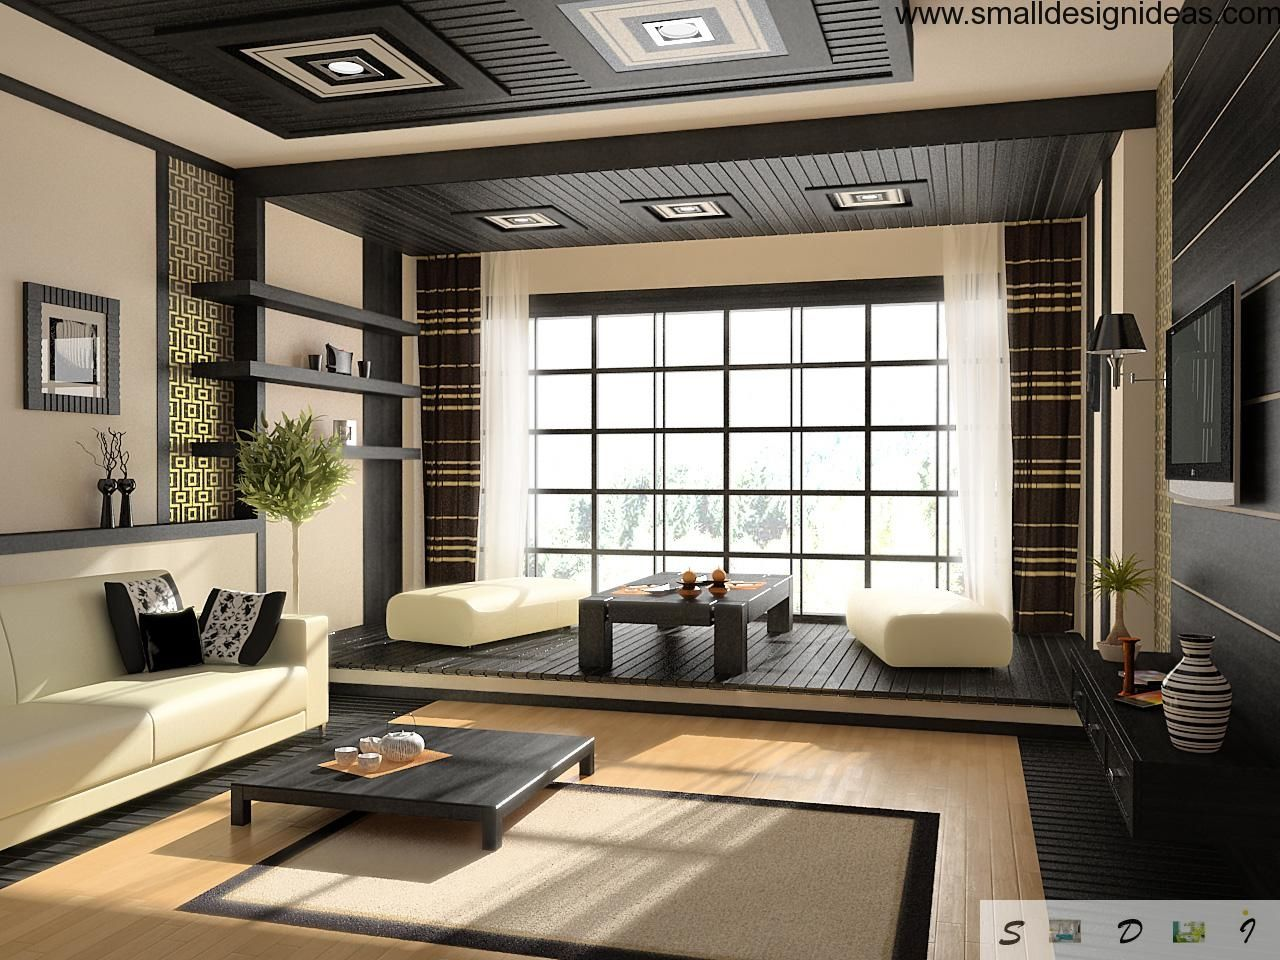 10 things to know before remodeling your interior into Japanese inspired room design